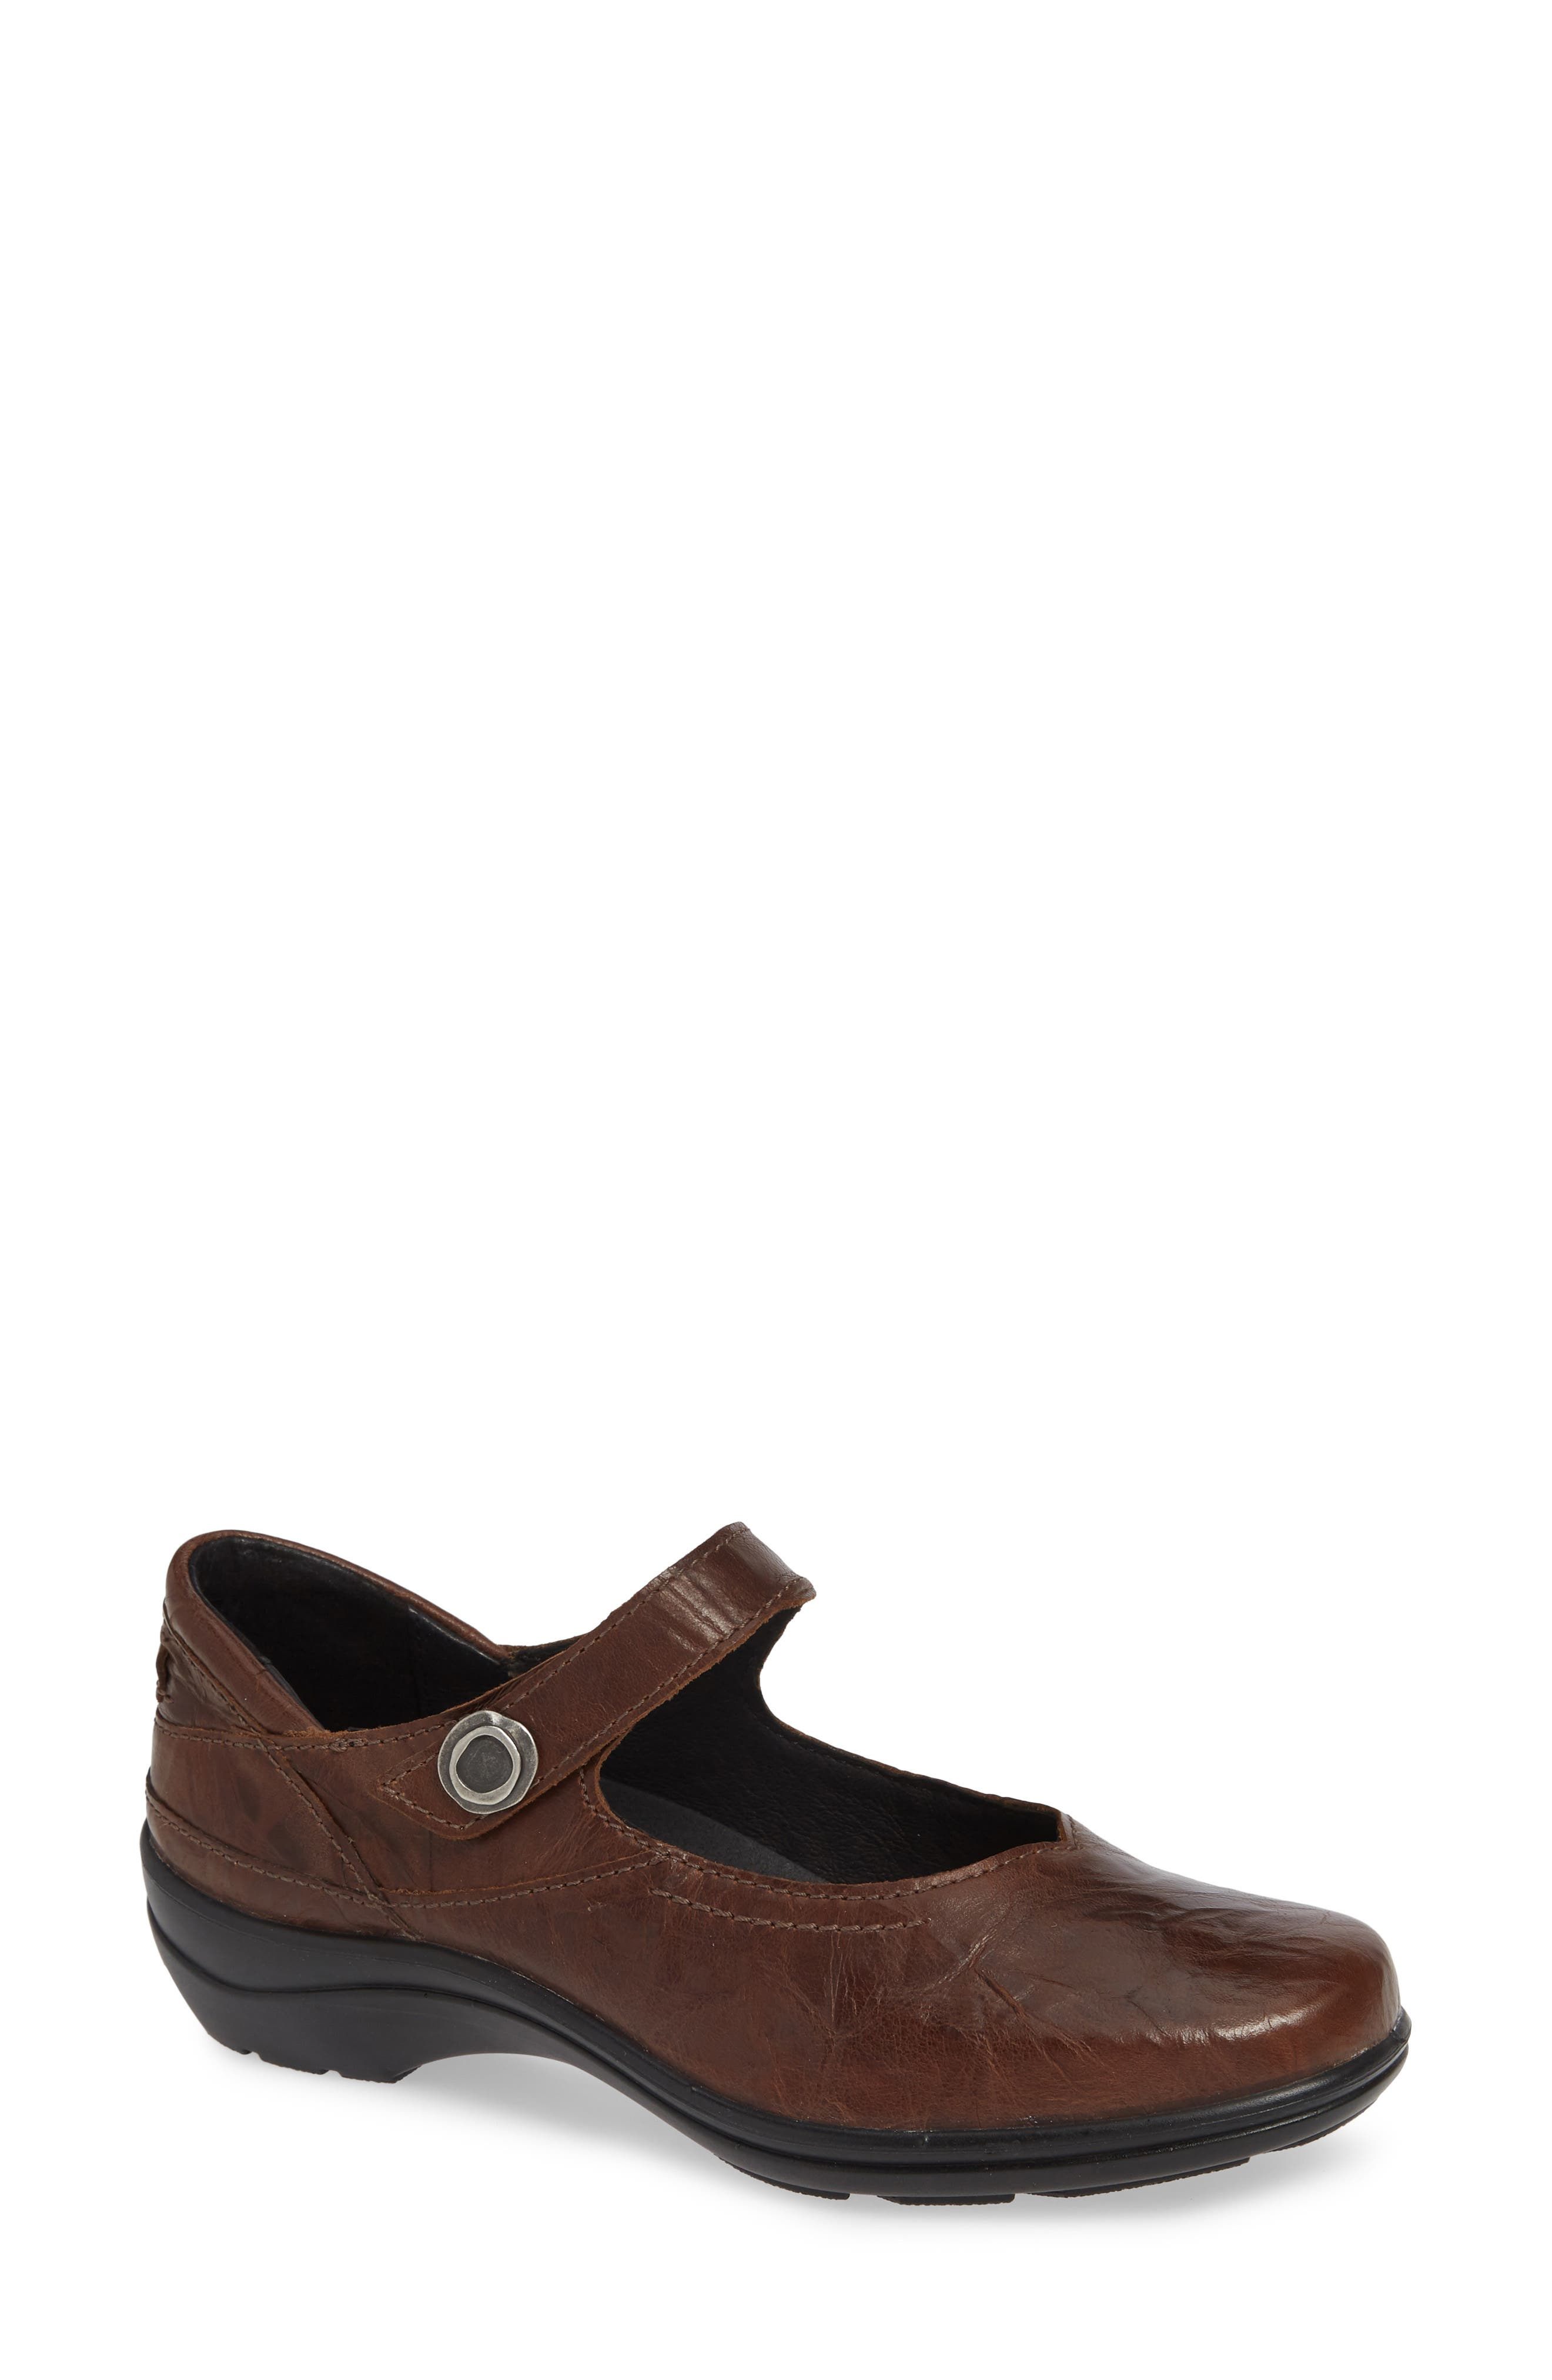 Cassie 50 Mary Jane Flat,                             Main thumbnail 1, color,                             BROWN LEATHER